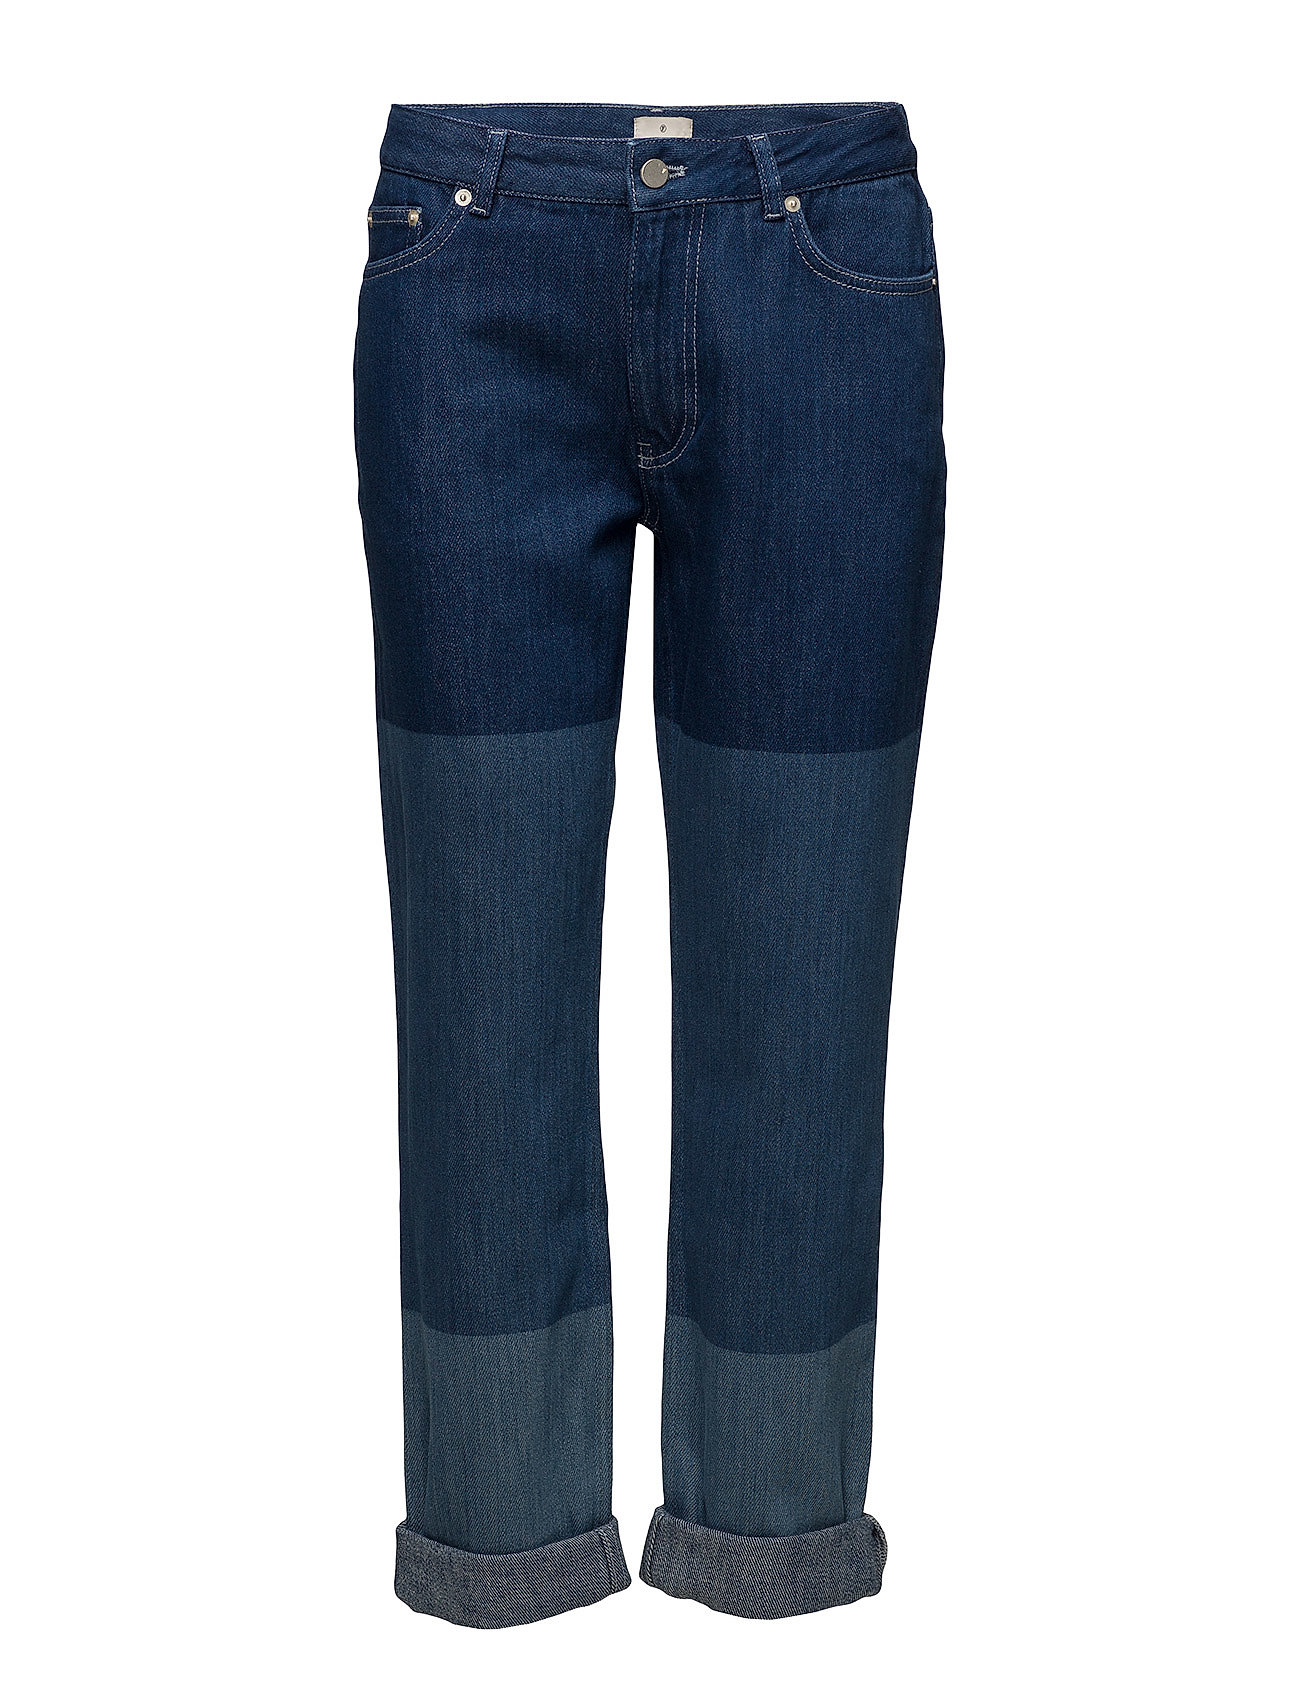 French Connection BOYFIT TRI SHADE JEANS Jeans